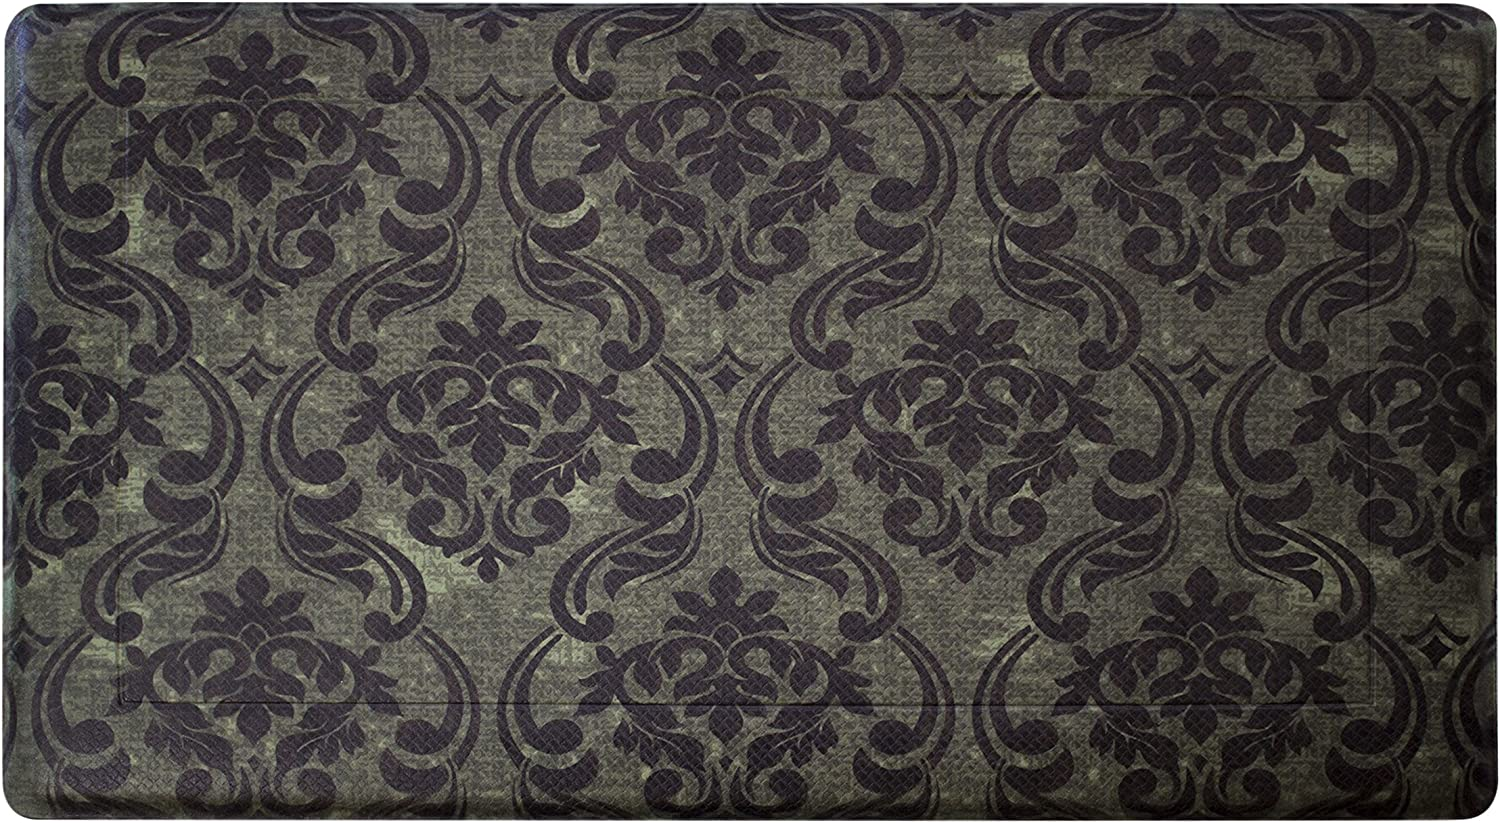 Chef Gear Natural Product HD Printed Kitchen Rug 20x32